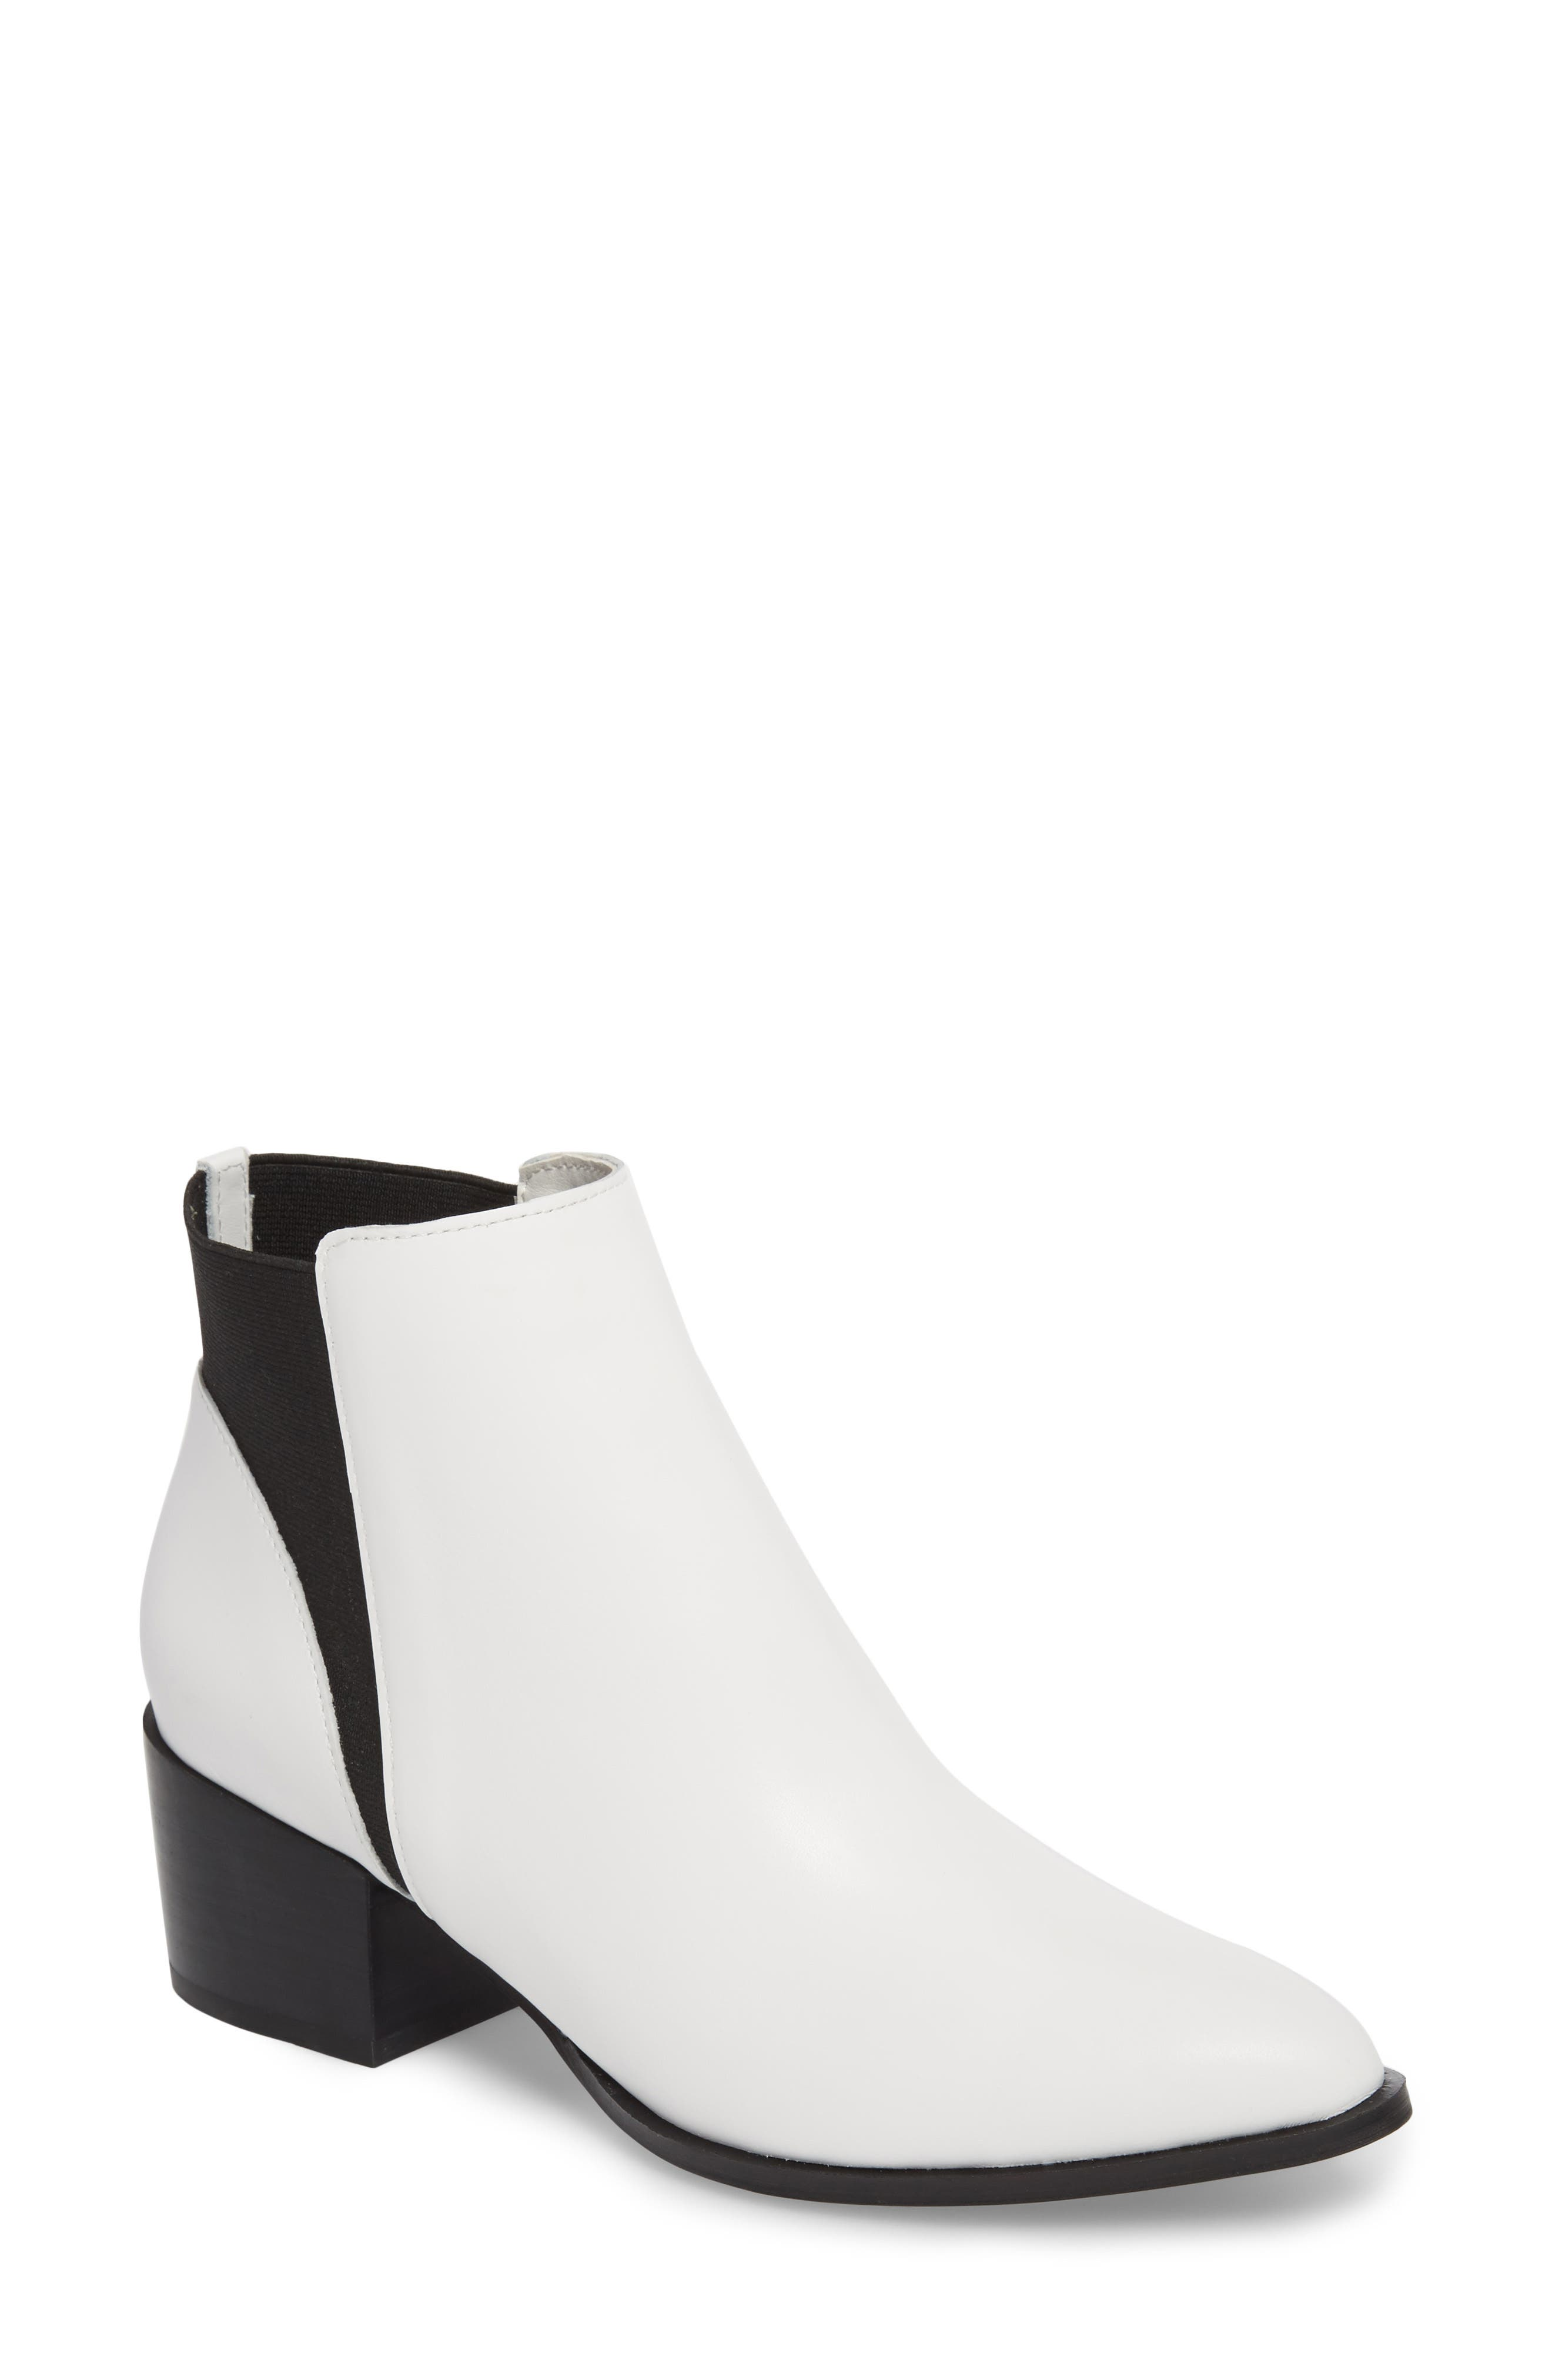 Chinese Laundry Finn Bootie- White